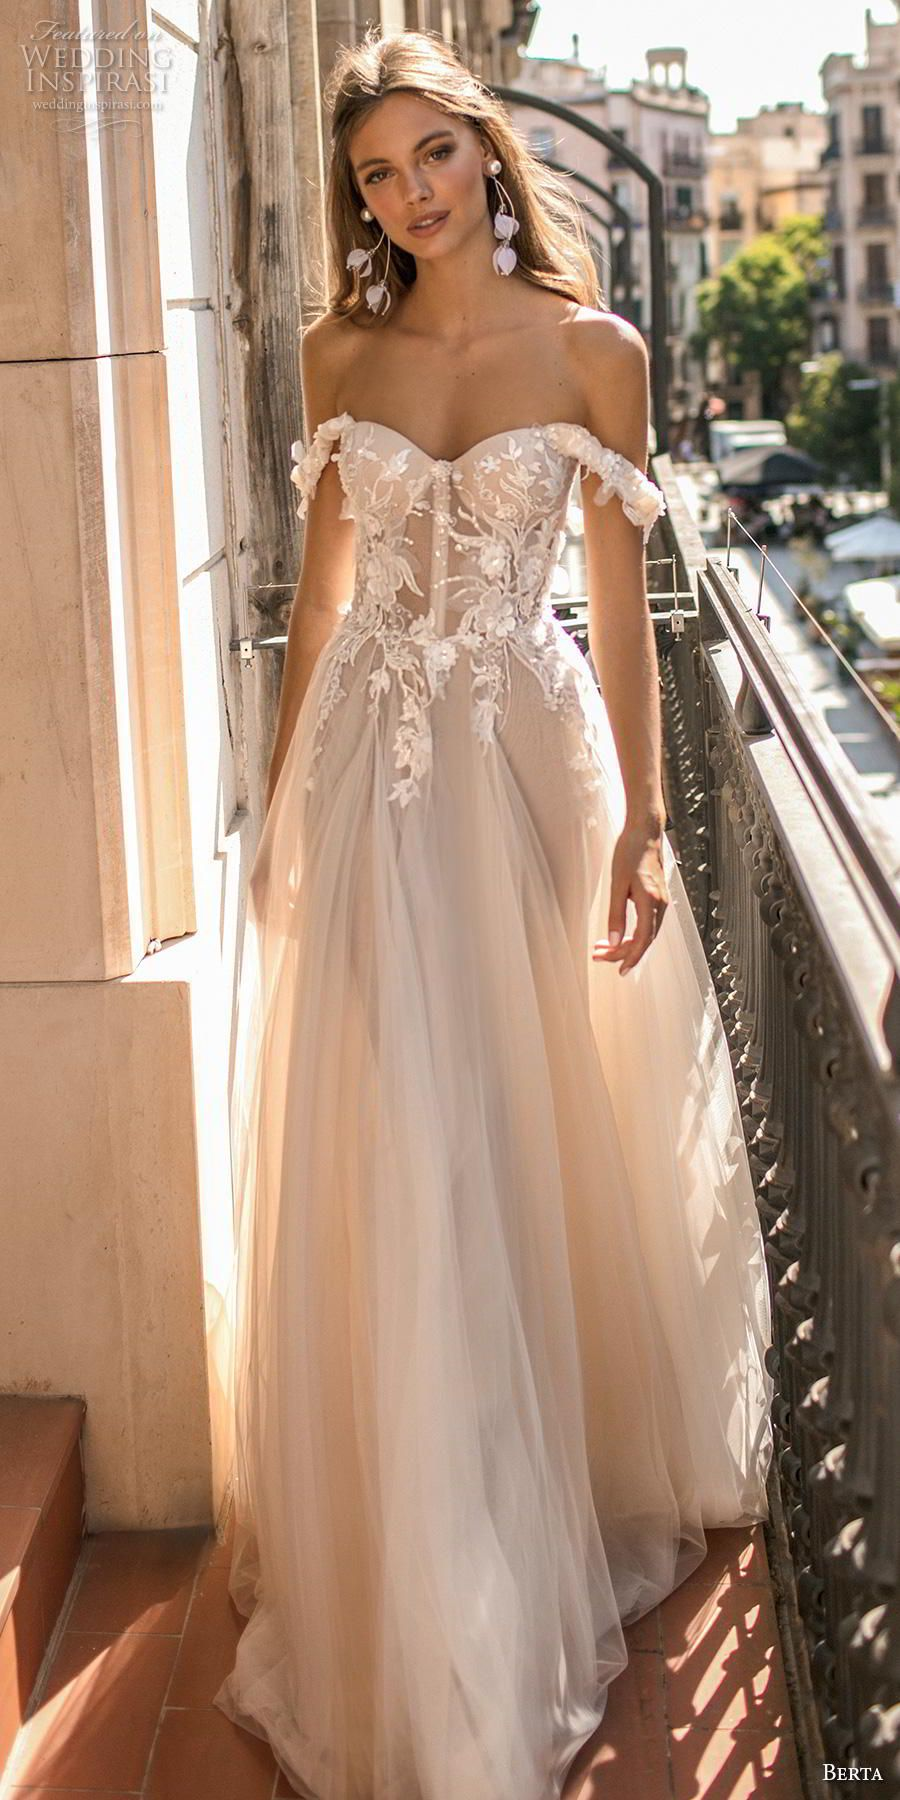 V neck white lace dress may 2019 MUSE by Berta  ucBarcelonaud Wedding Dresses in   Wedding